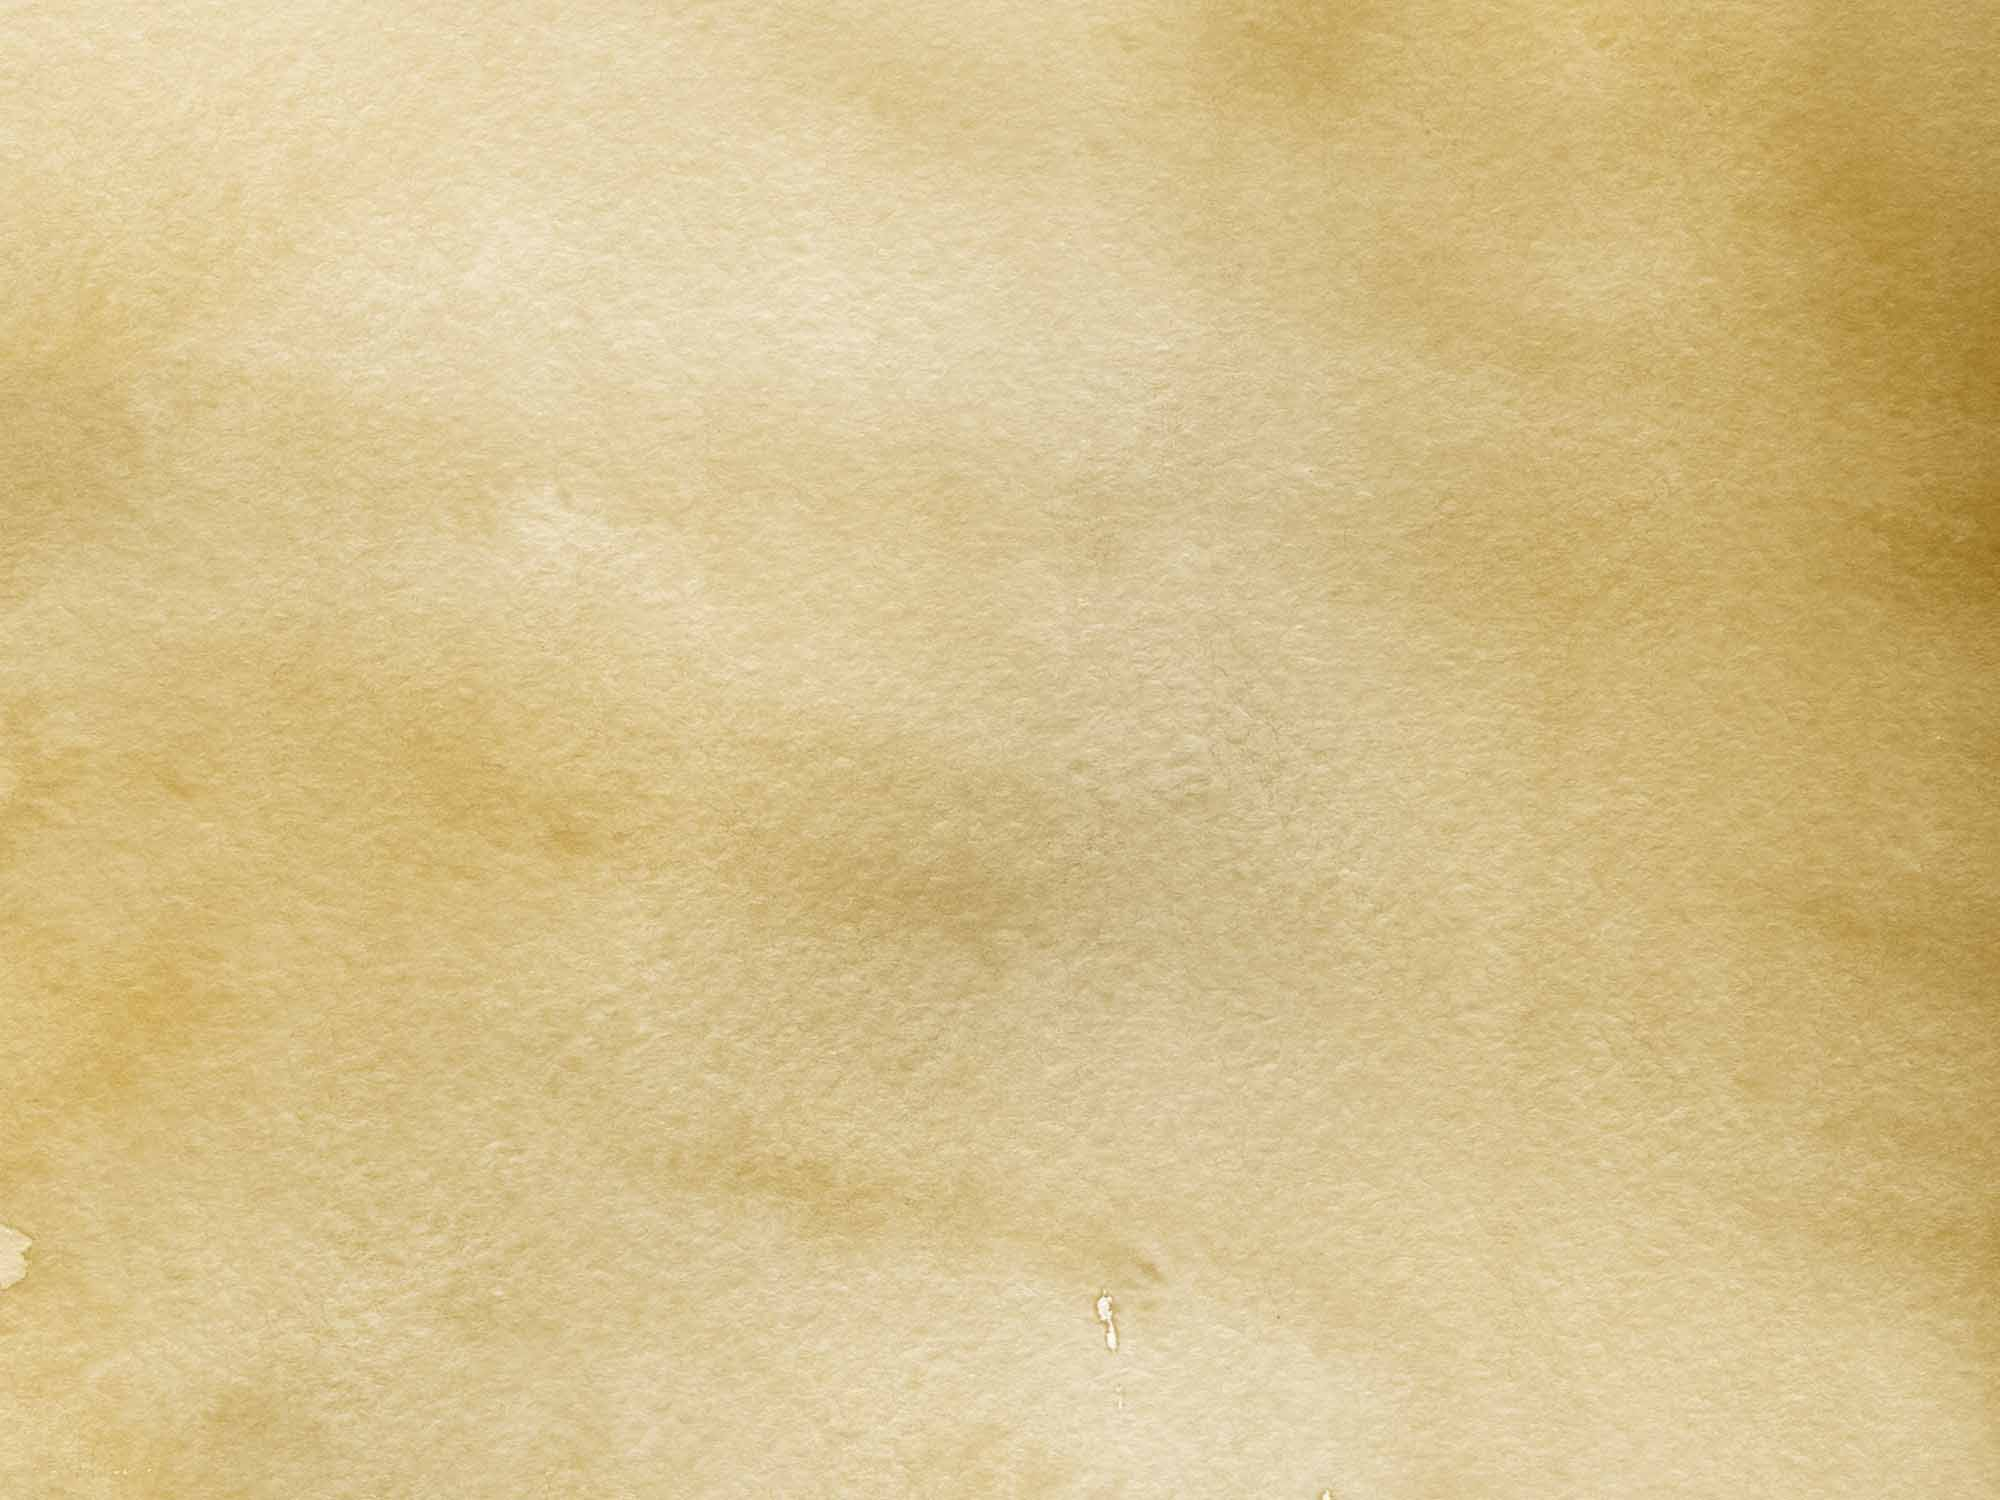 Gold and Silver Watercolor Textures 8